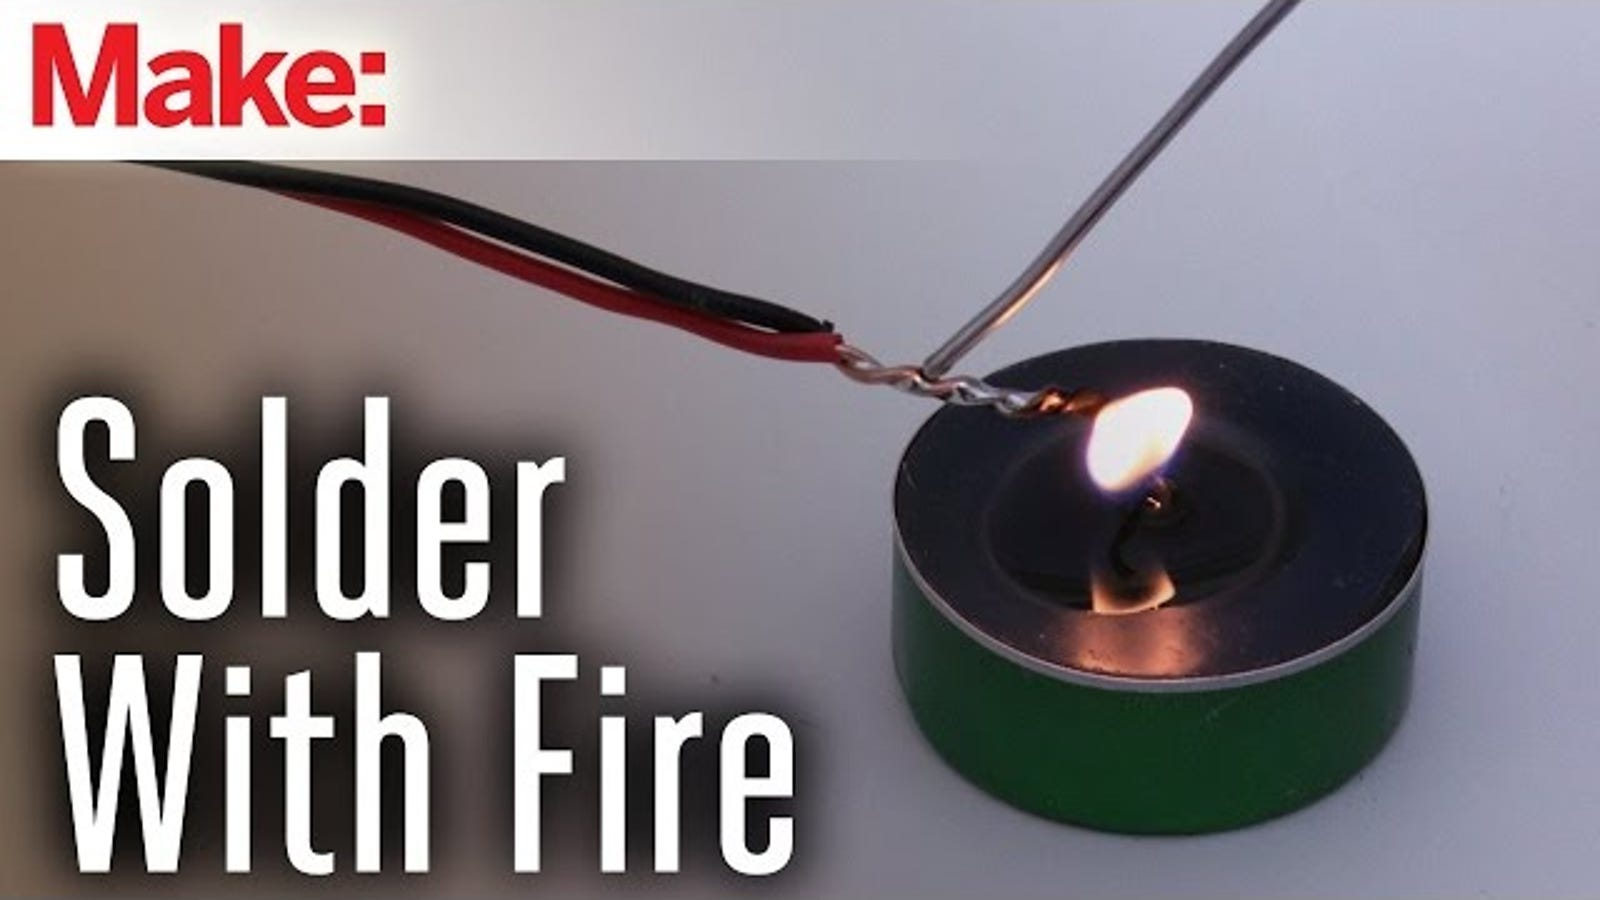 Solder without a Soldering Iron Using Steel Wire and Fire